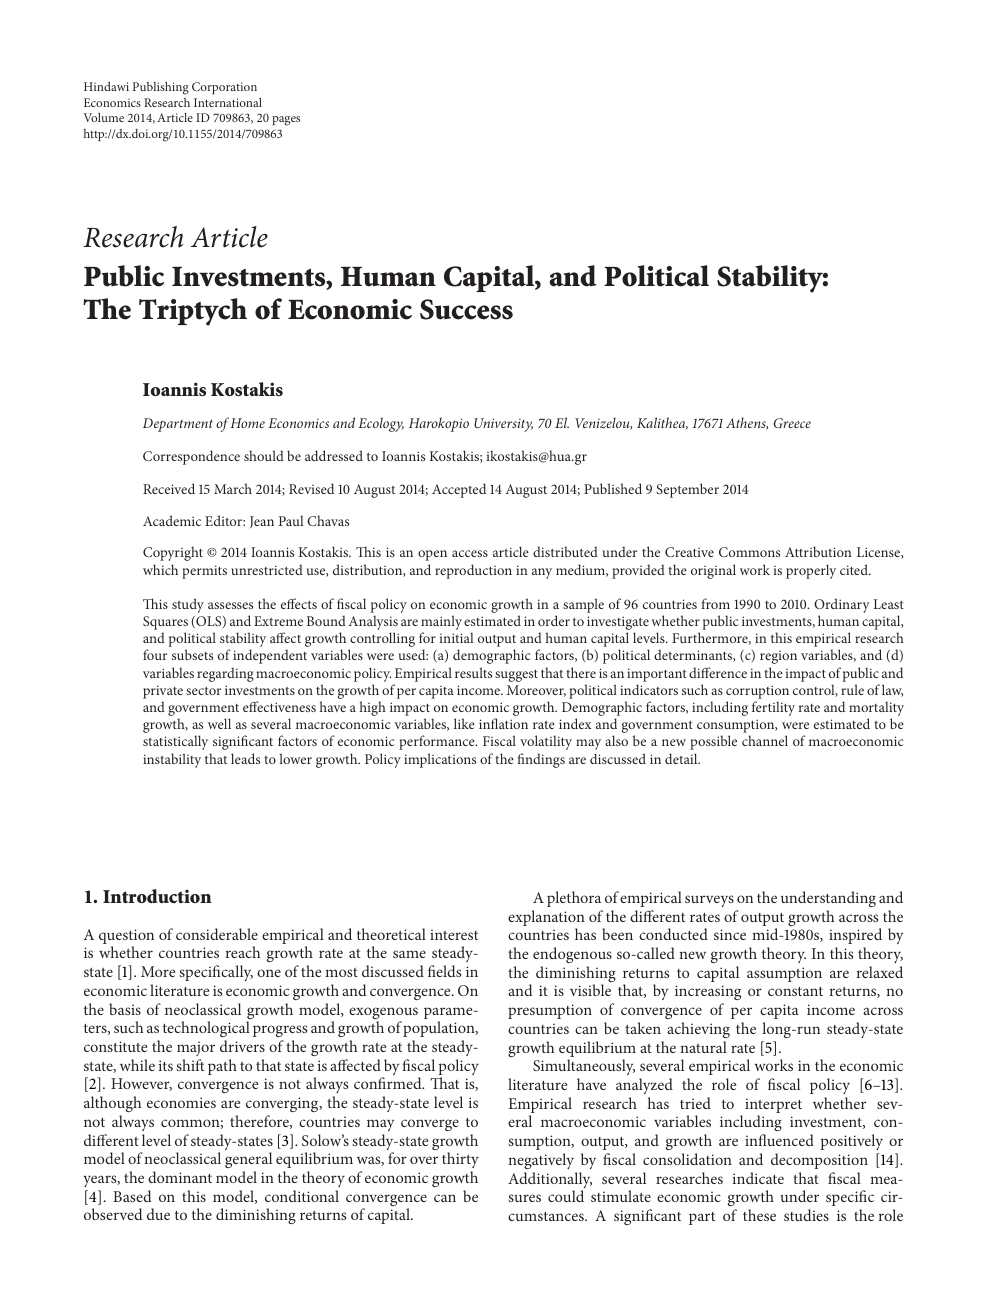 Public Investments Human Capital And Political Stability The Triptych Of Economic Success Topic Of Research Paper In Economics And Business Download Scholarly Article Pdf And Read For Free On Cyberleninka Open